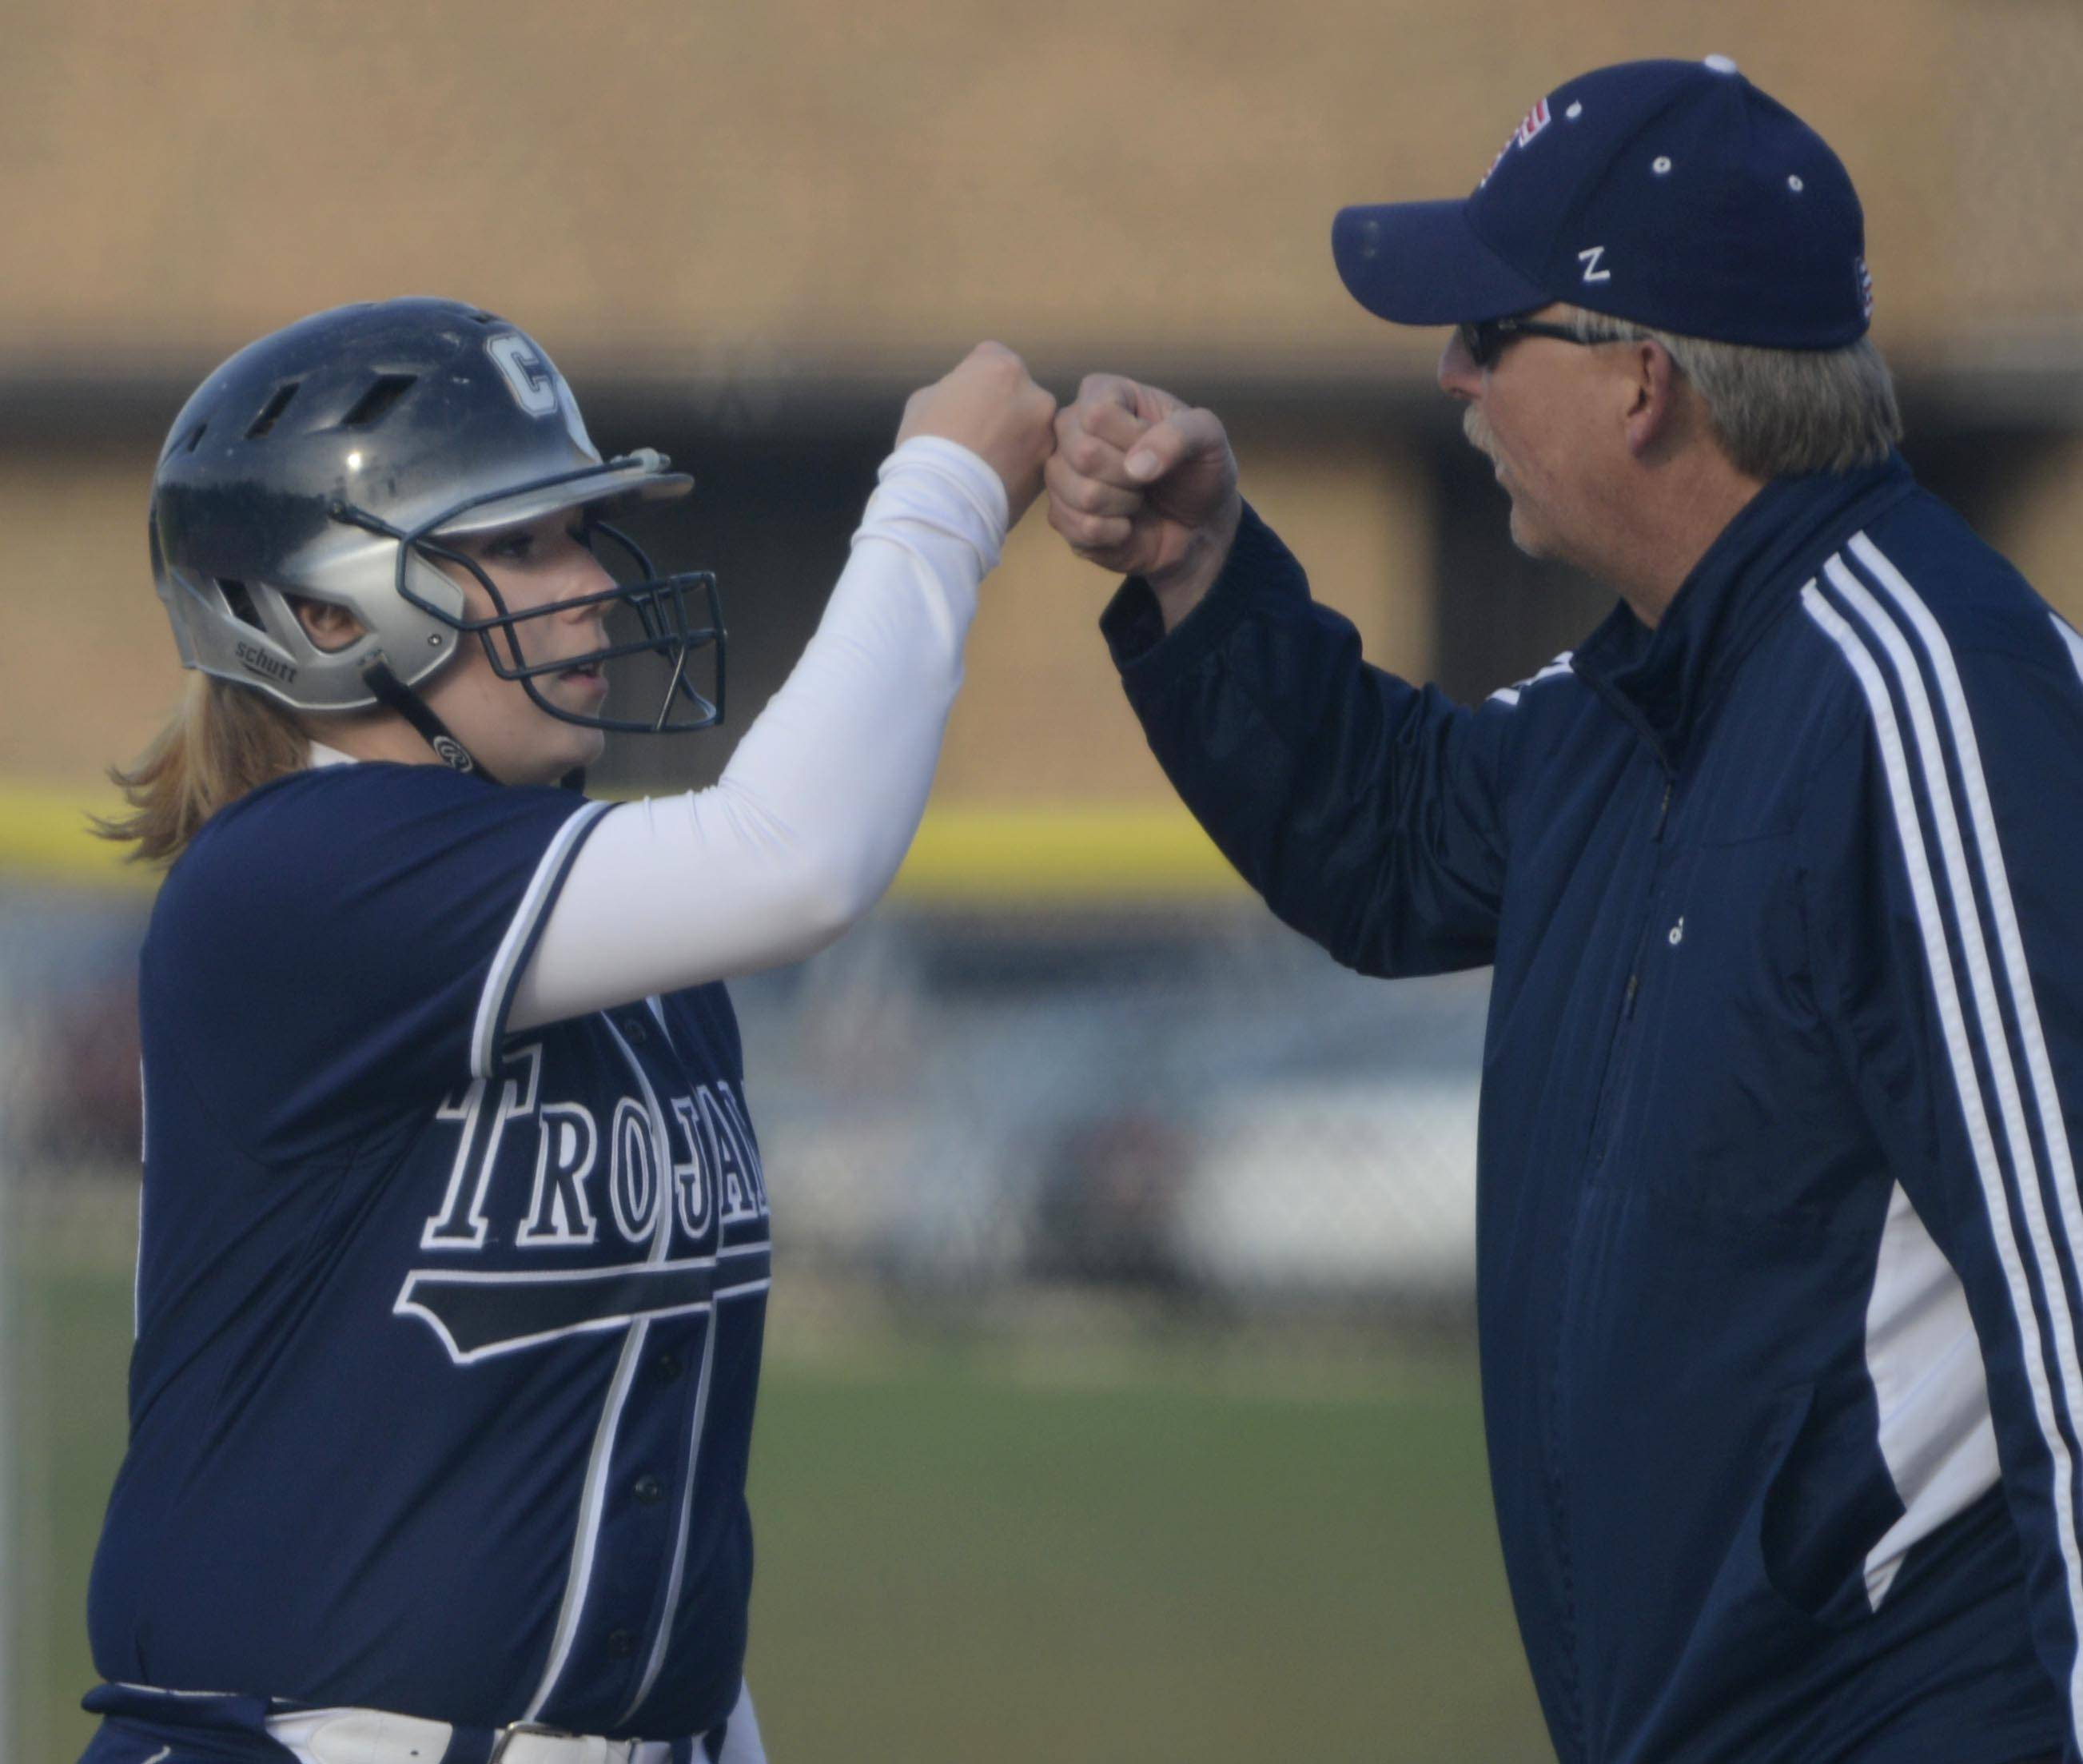 John Starks/jstarks@dailyherald.comCary-Grove's Amanda DeGroote is congratulated on her two RBI base hit against Jacobs in the fifth inning by assistant coach Mark Olson Tuesday in Cary.